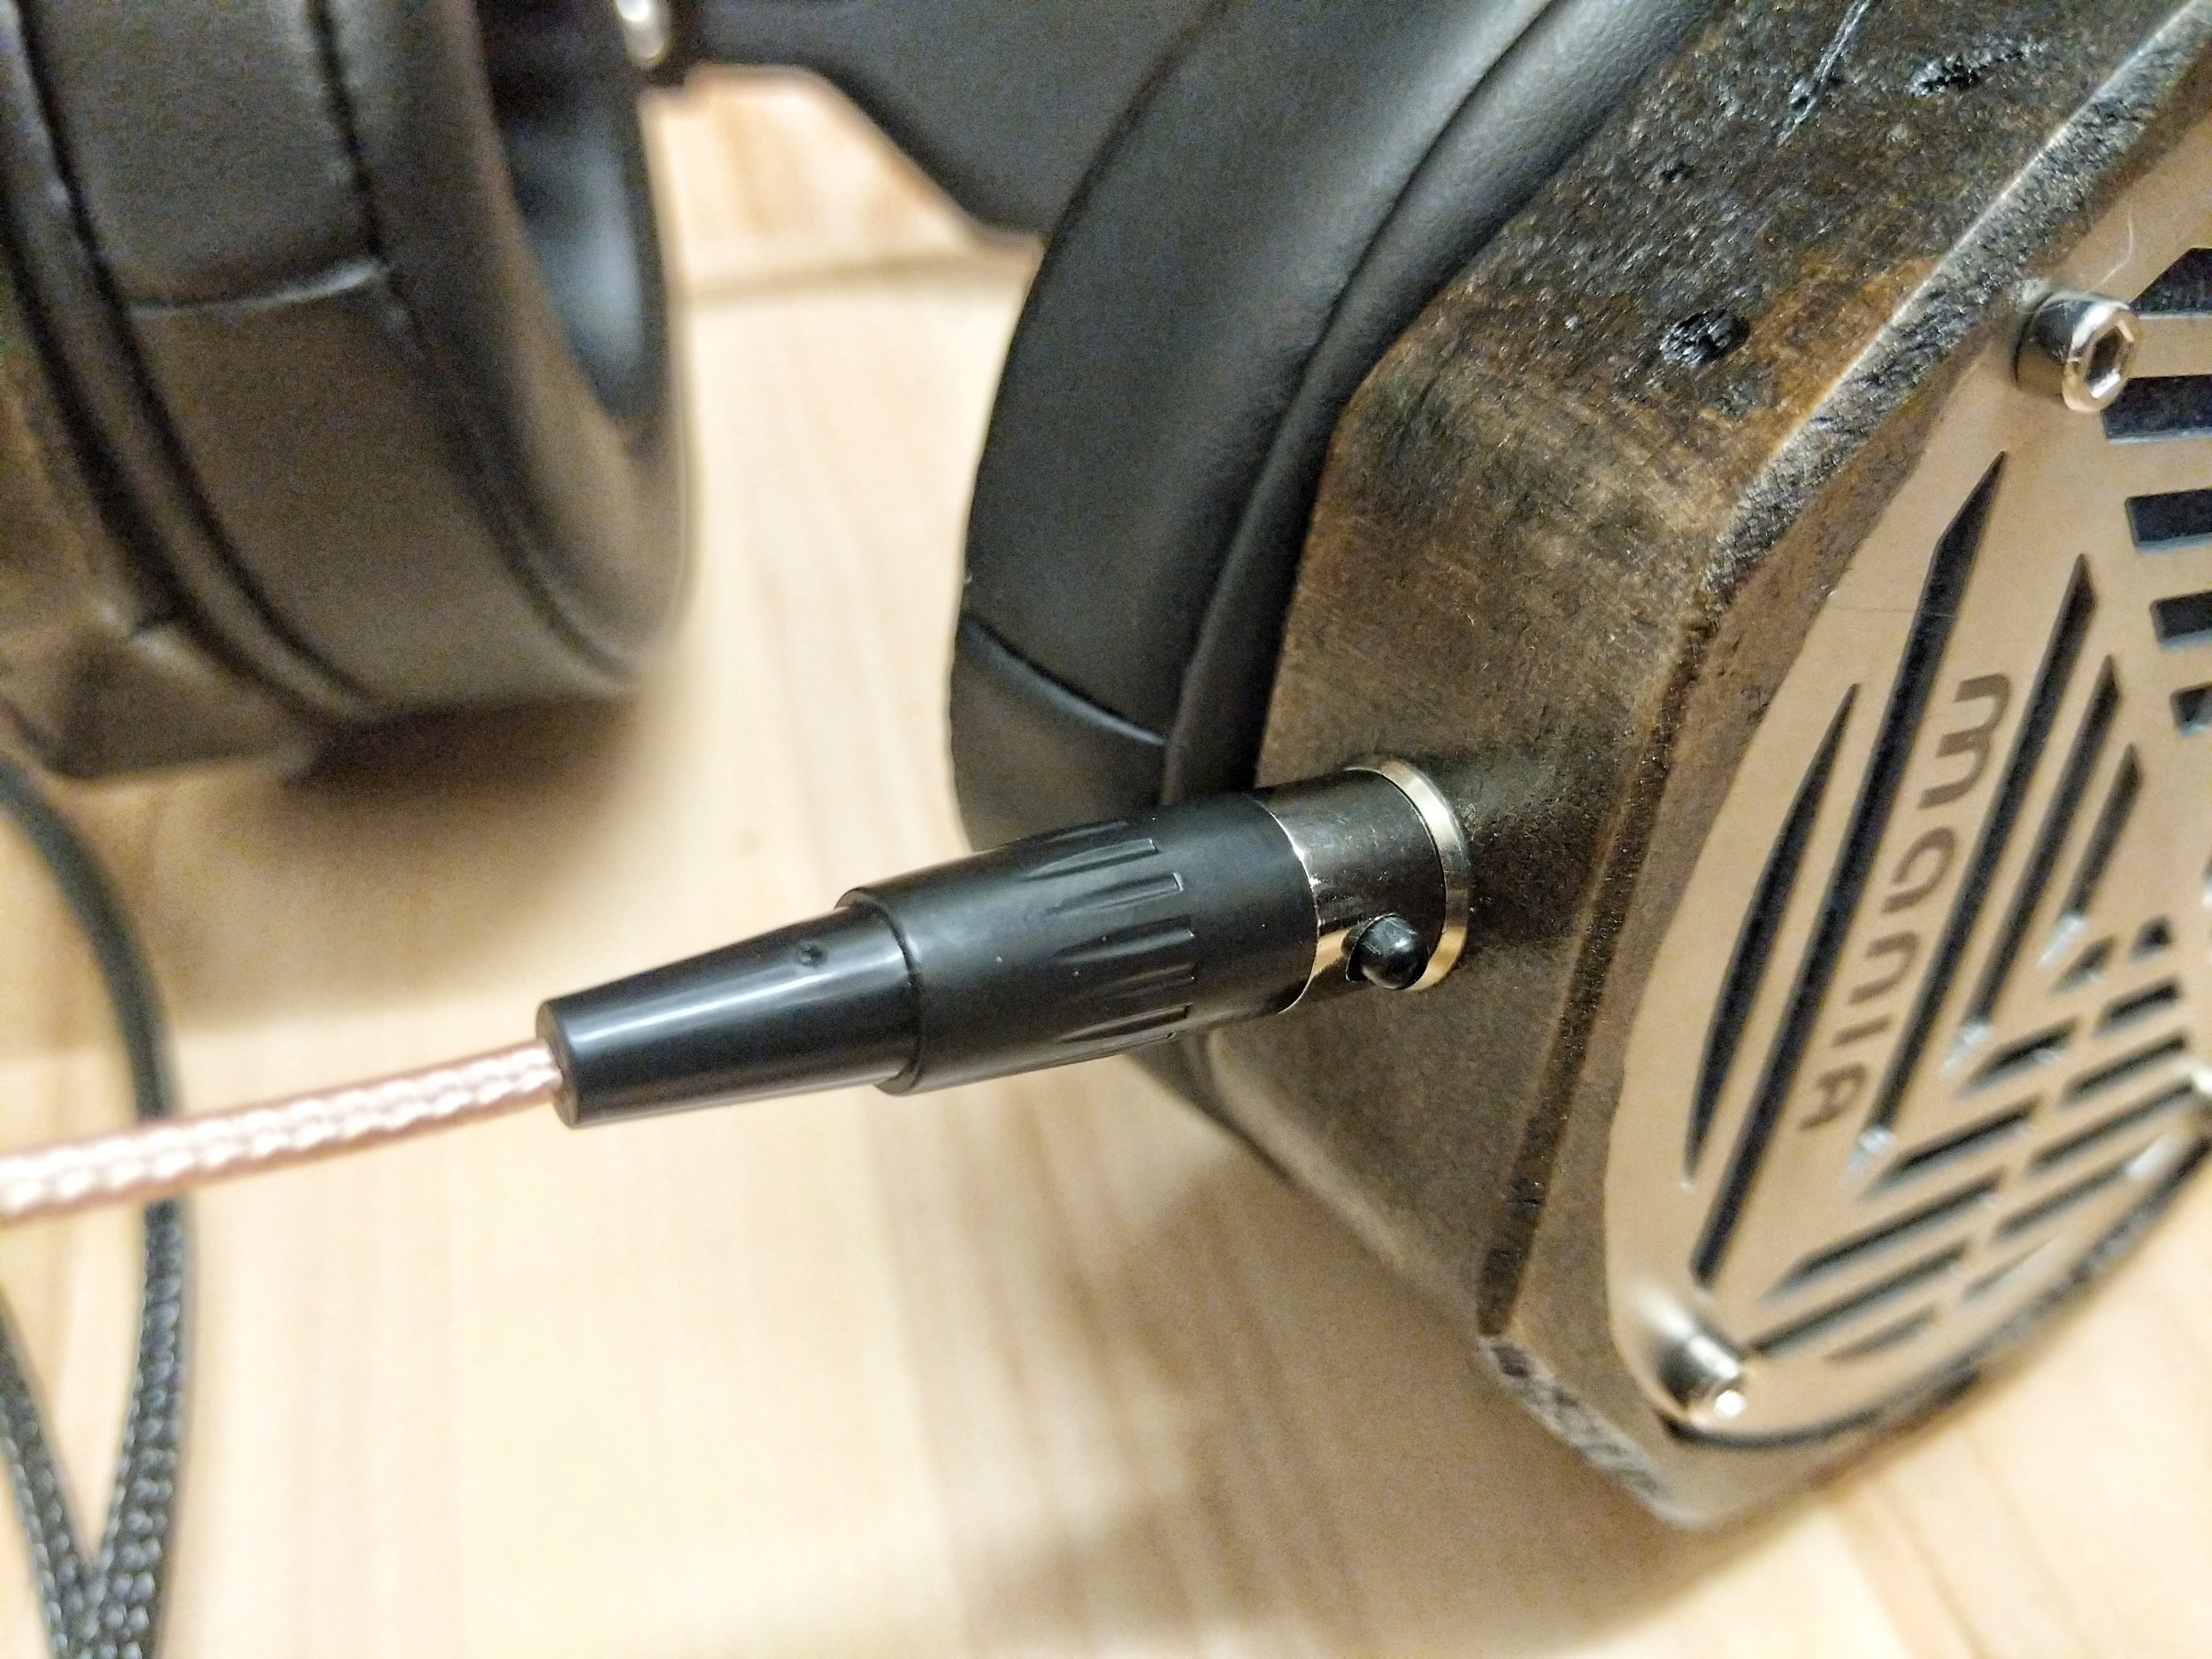 Cable connection on mania headphones by Erzetich